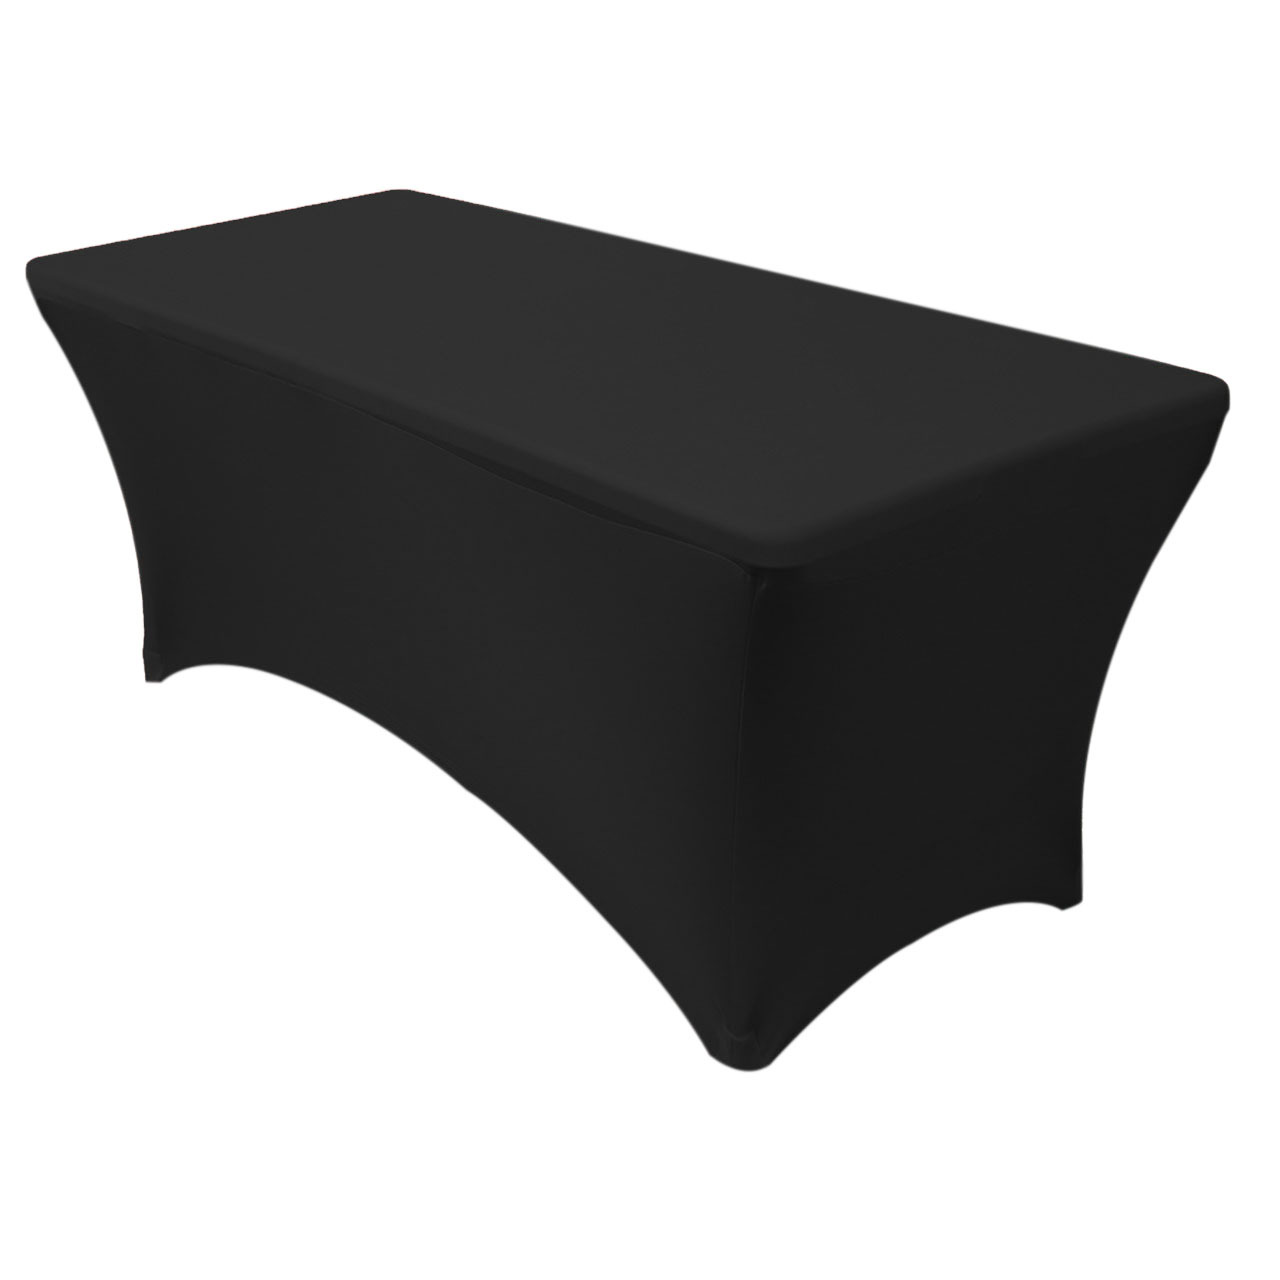 6ft rectangular spandex tablecloth black